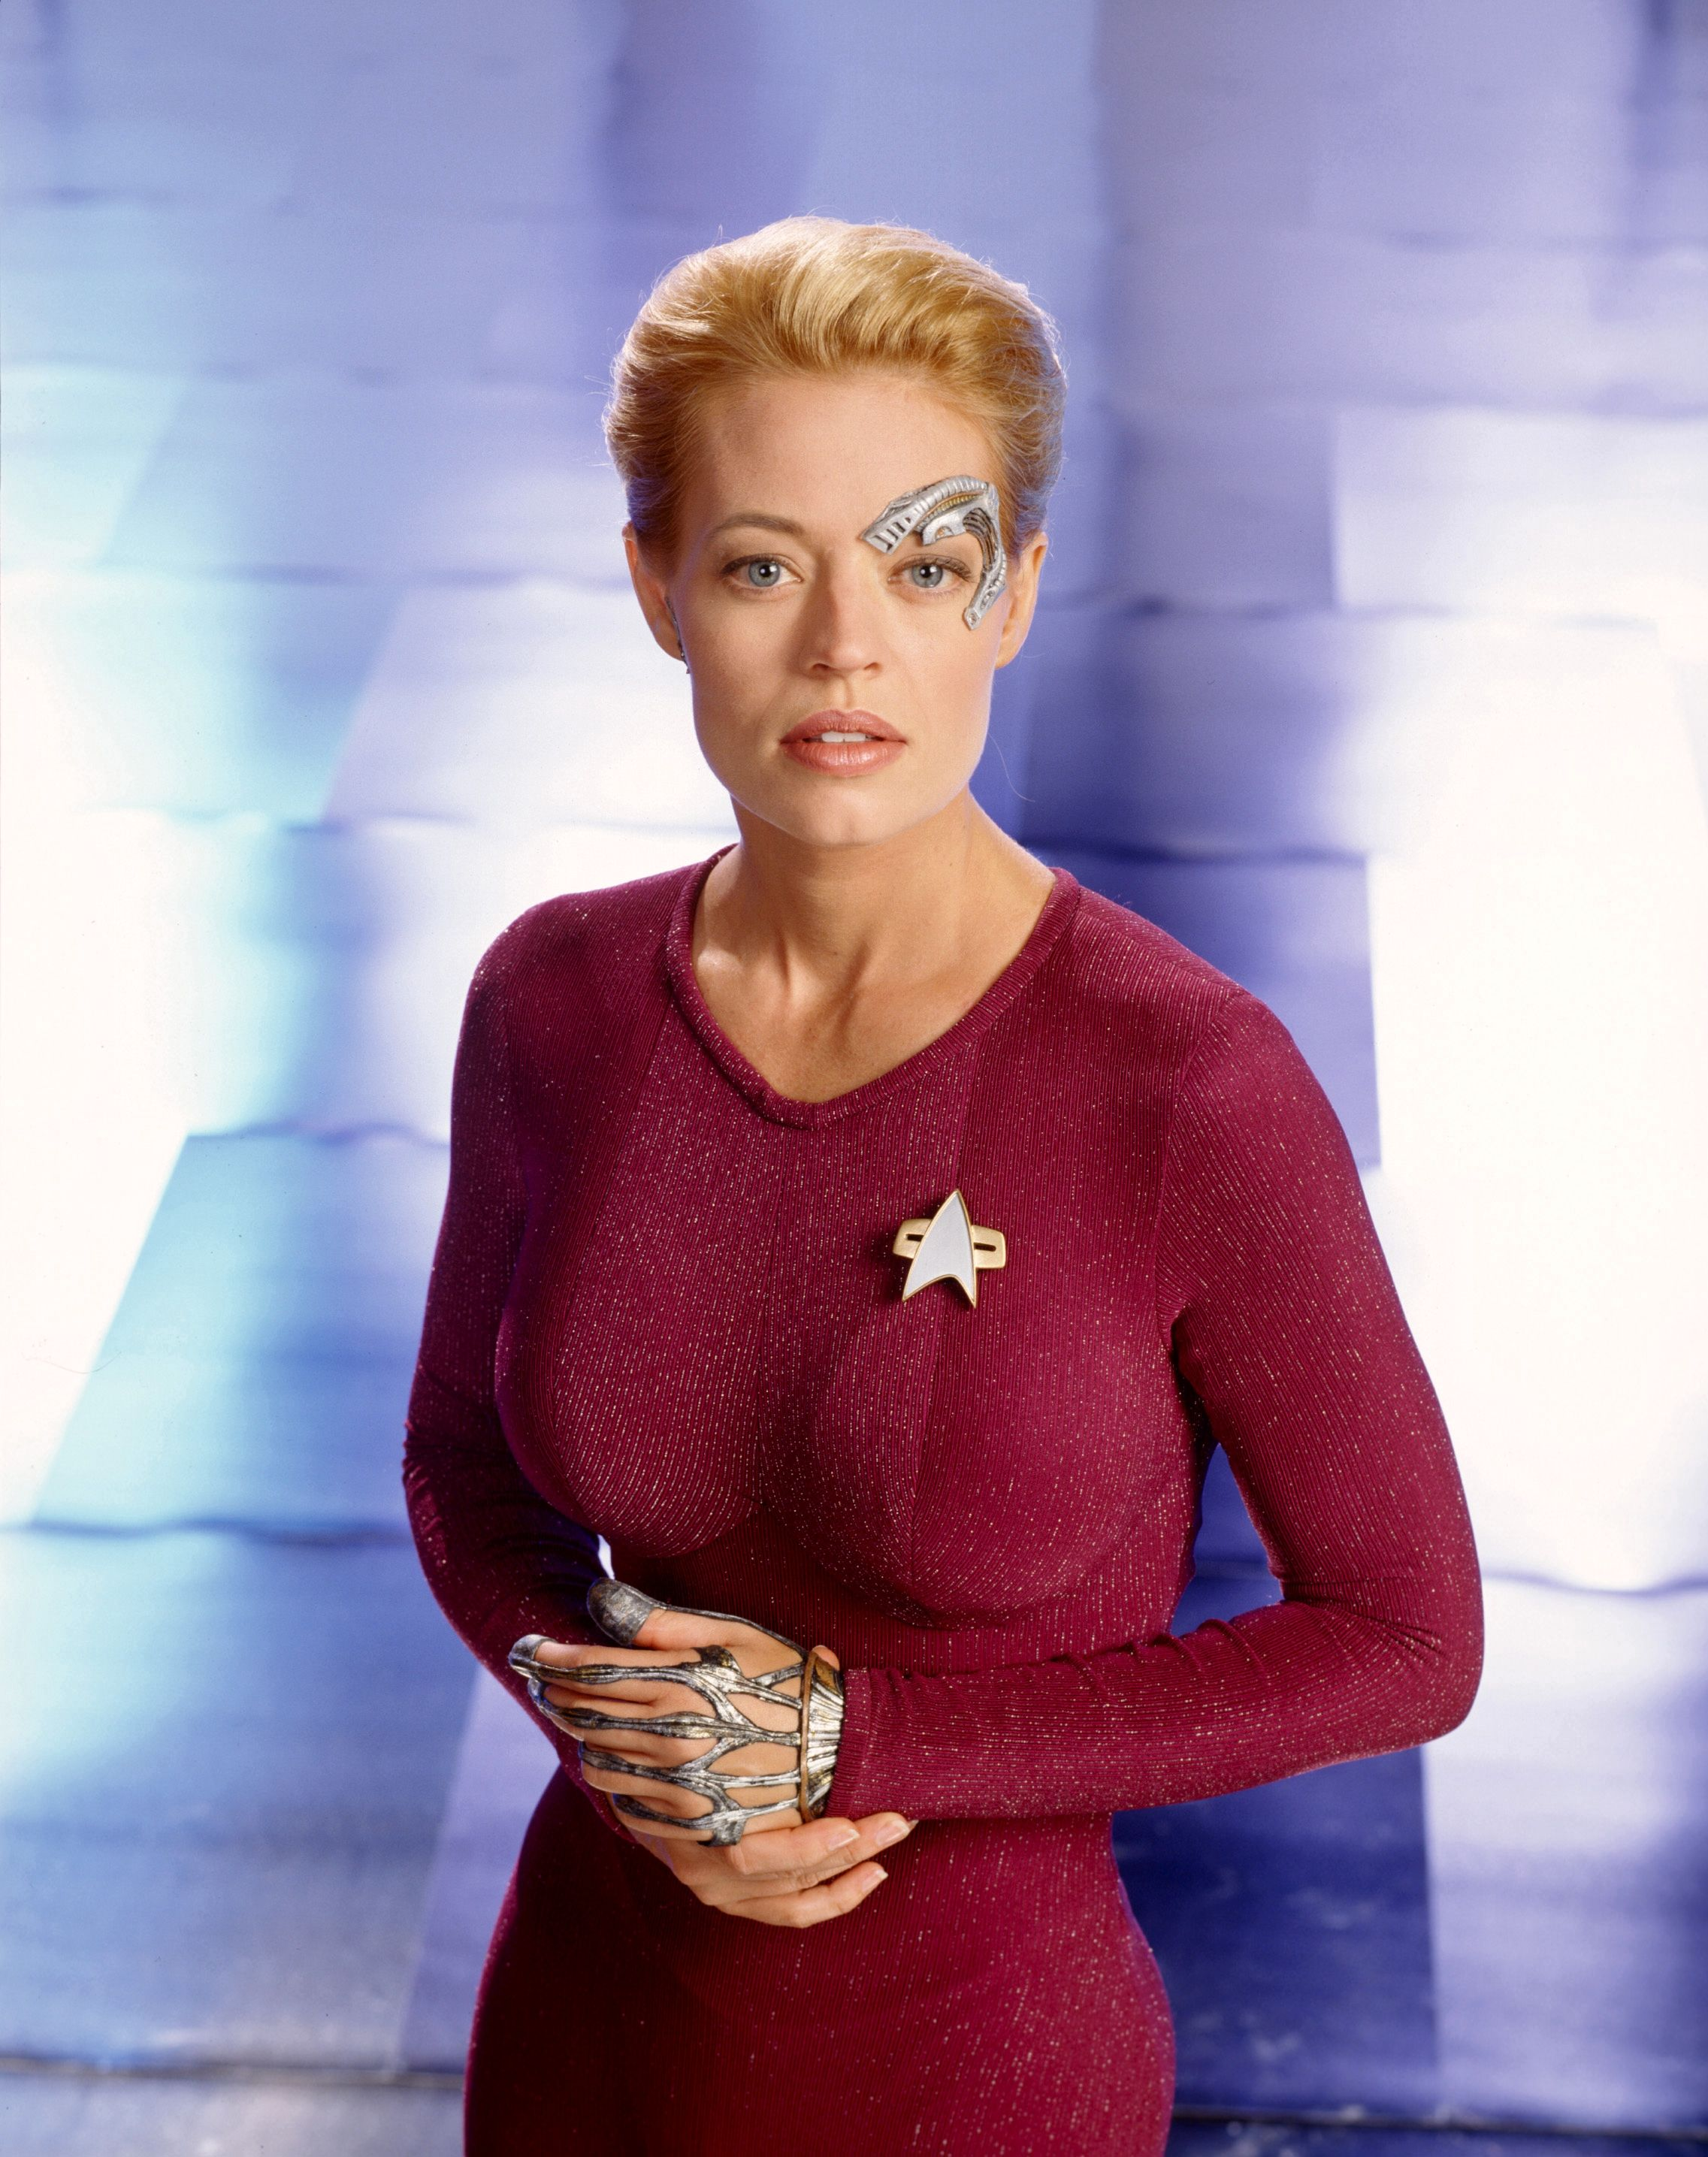 Star Trek Voyager 7 of 9 | home star trek voyager seven of nine ...